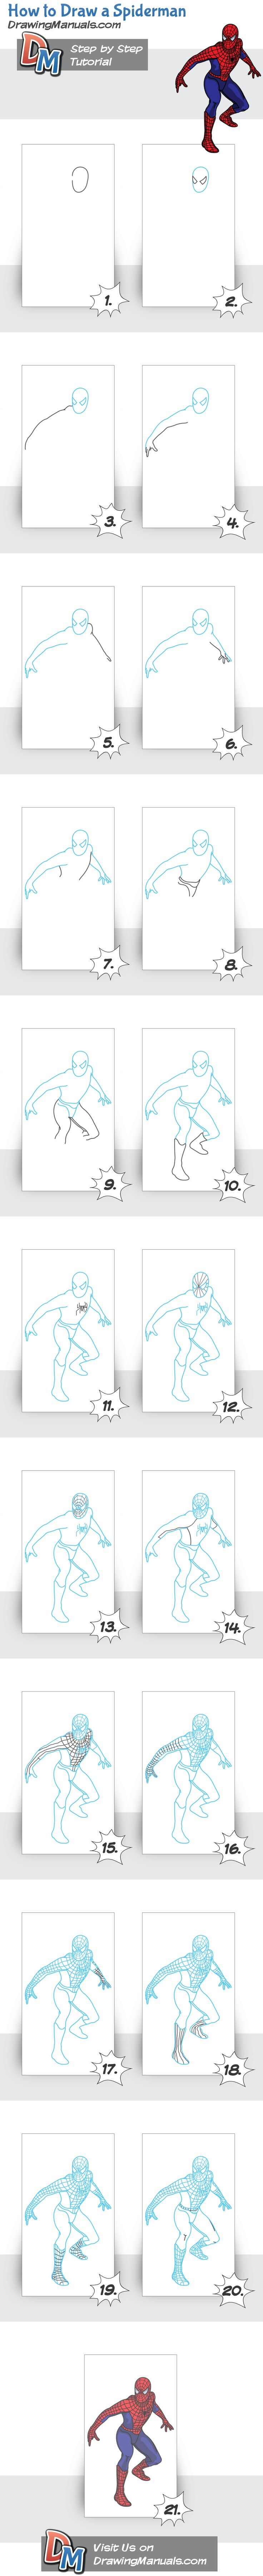 How to Draw Spiderman - Visit to grab an amazing super hero shirt now on sale!